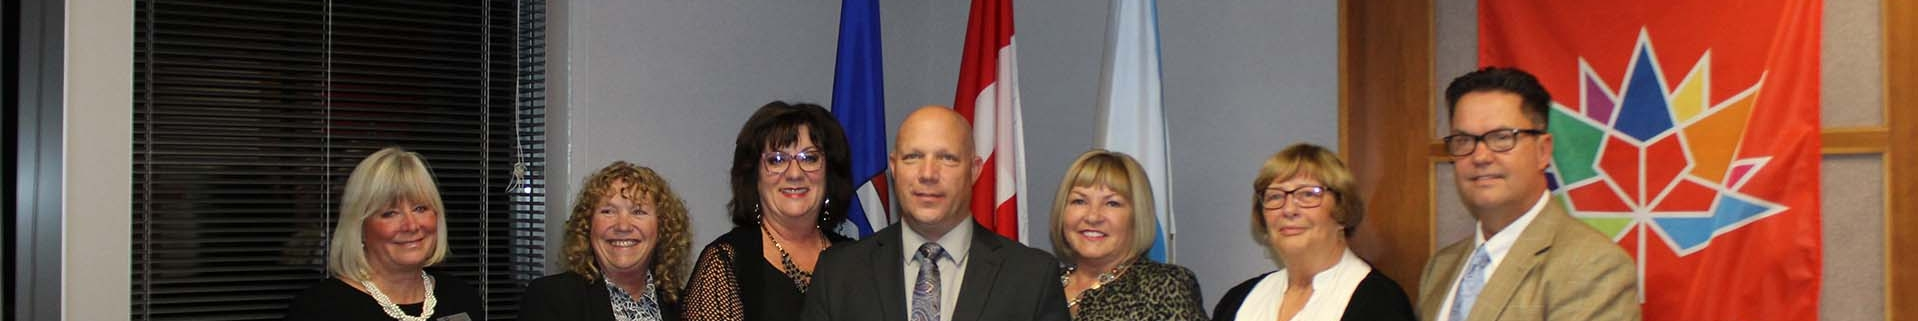 Town of Olds Council Members